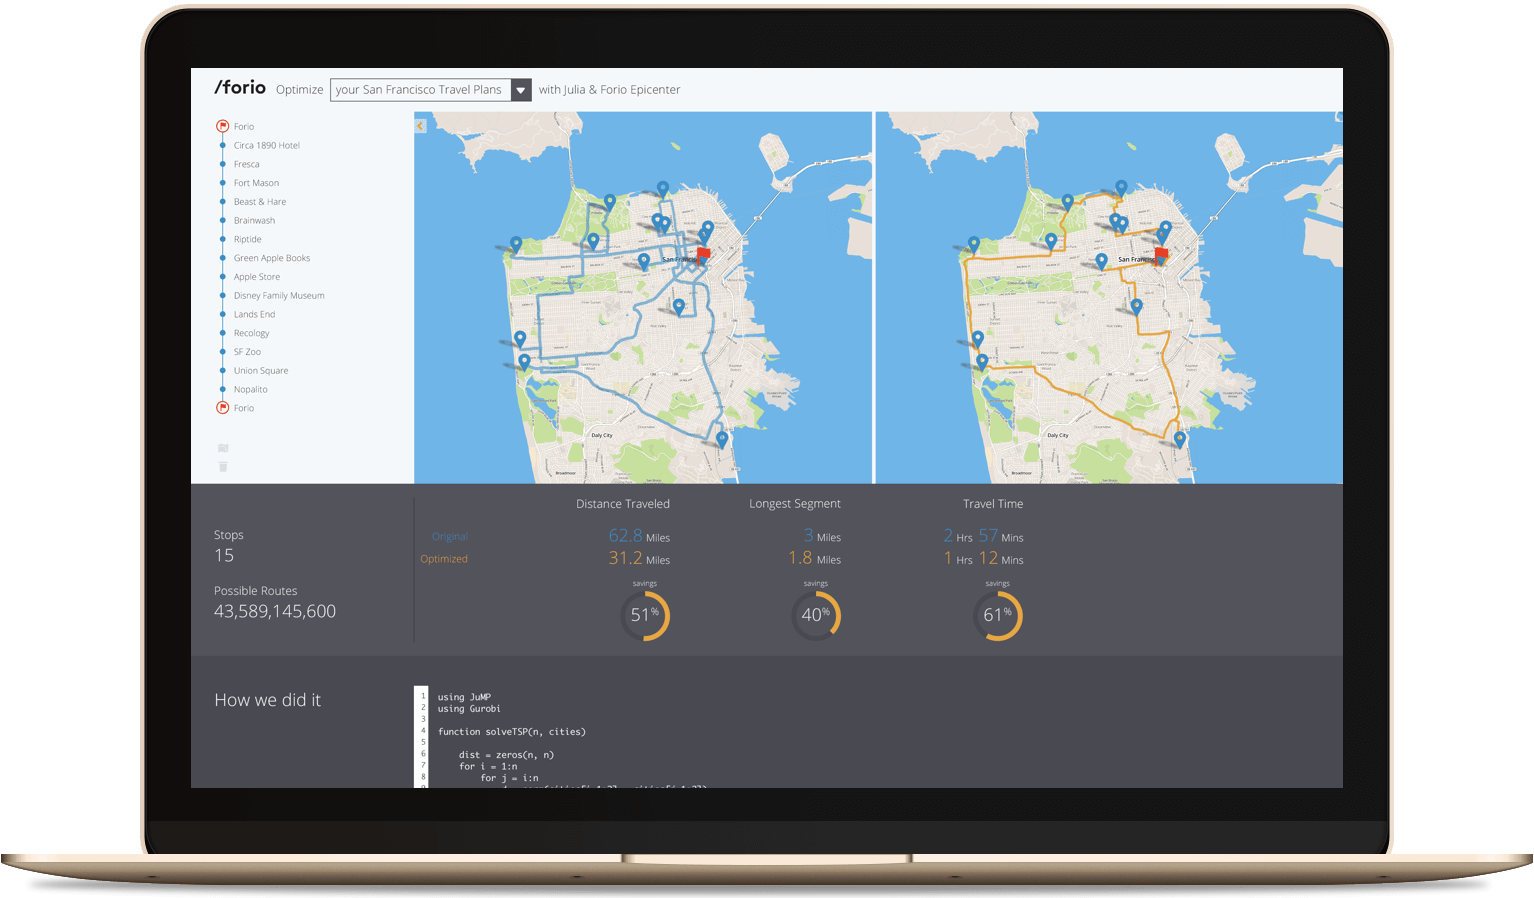 The Route Optimizer by Forio